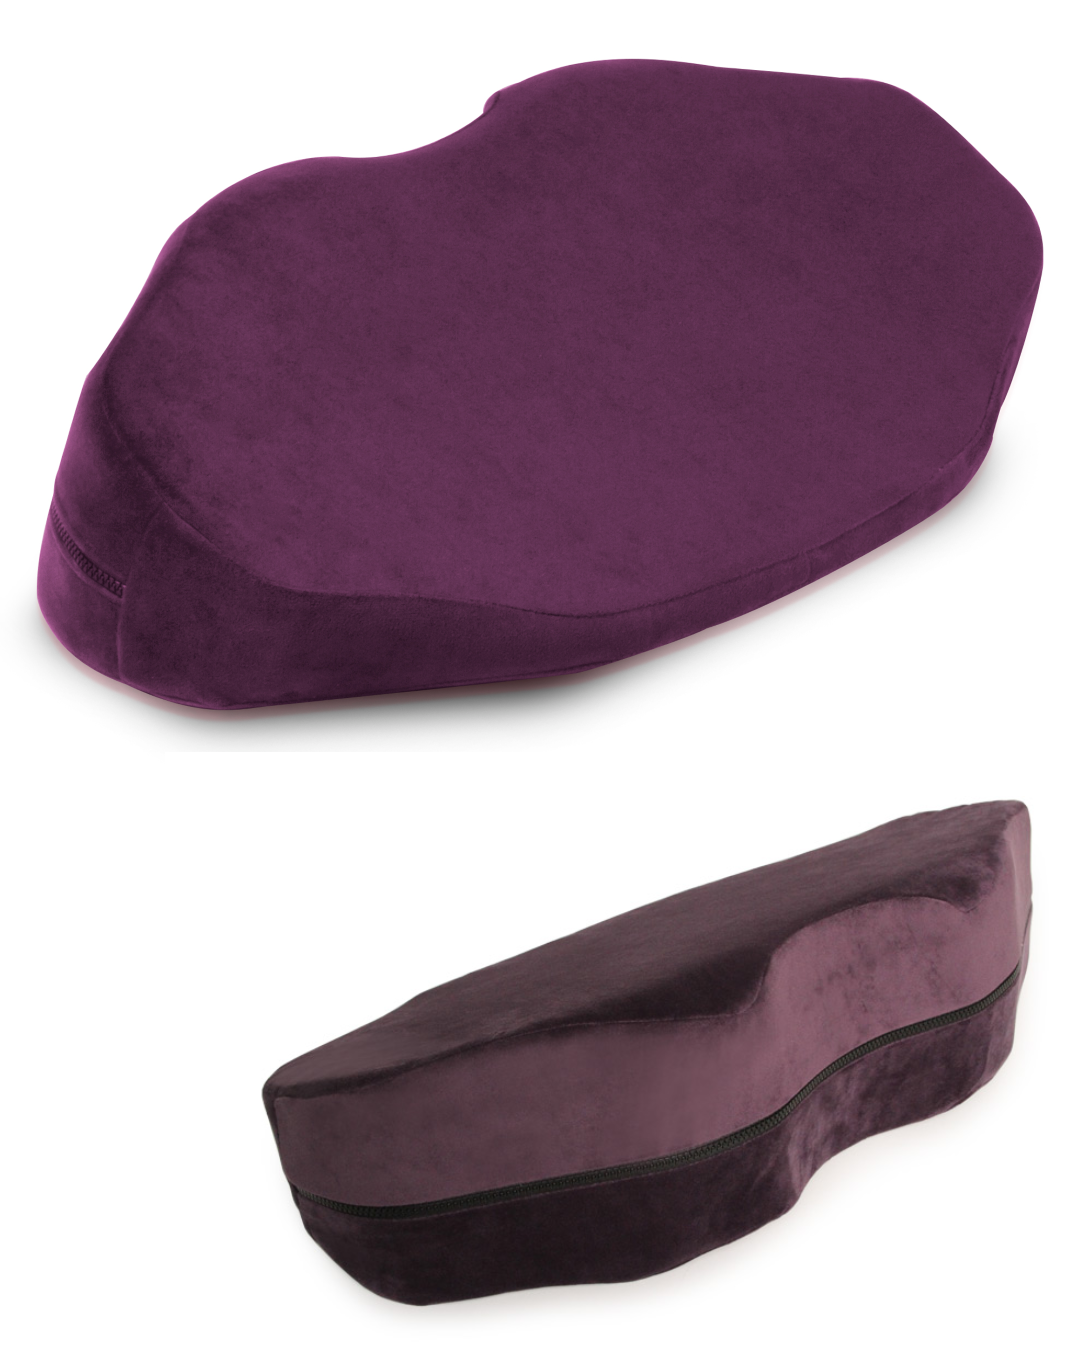 Liberator Decor Arche Wedge Sex Positioning Cushion - Assorted Colors plum